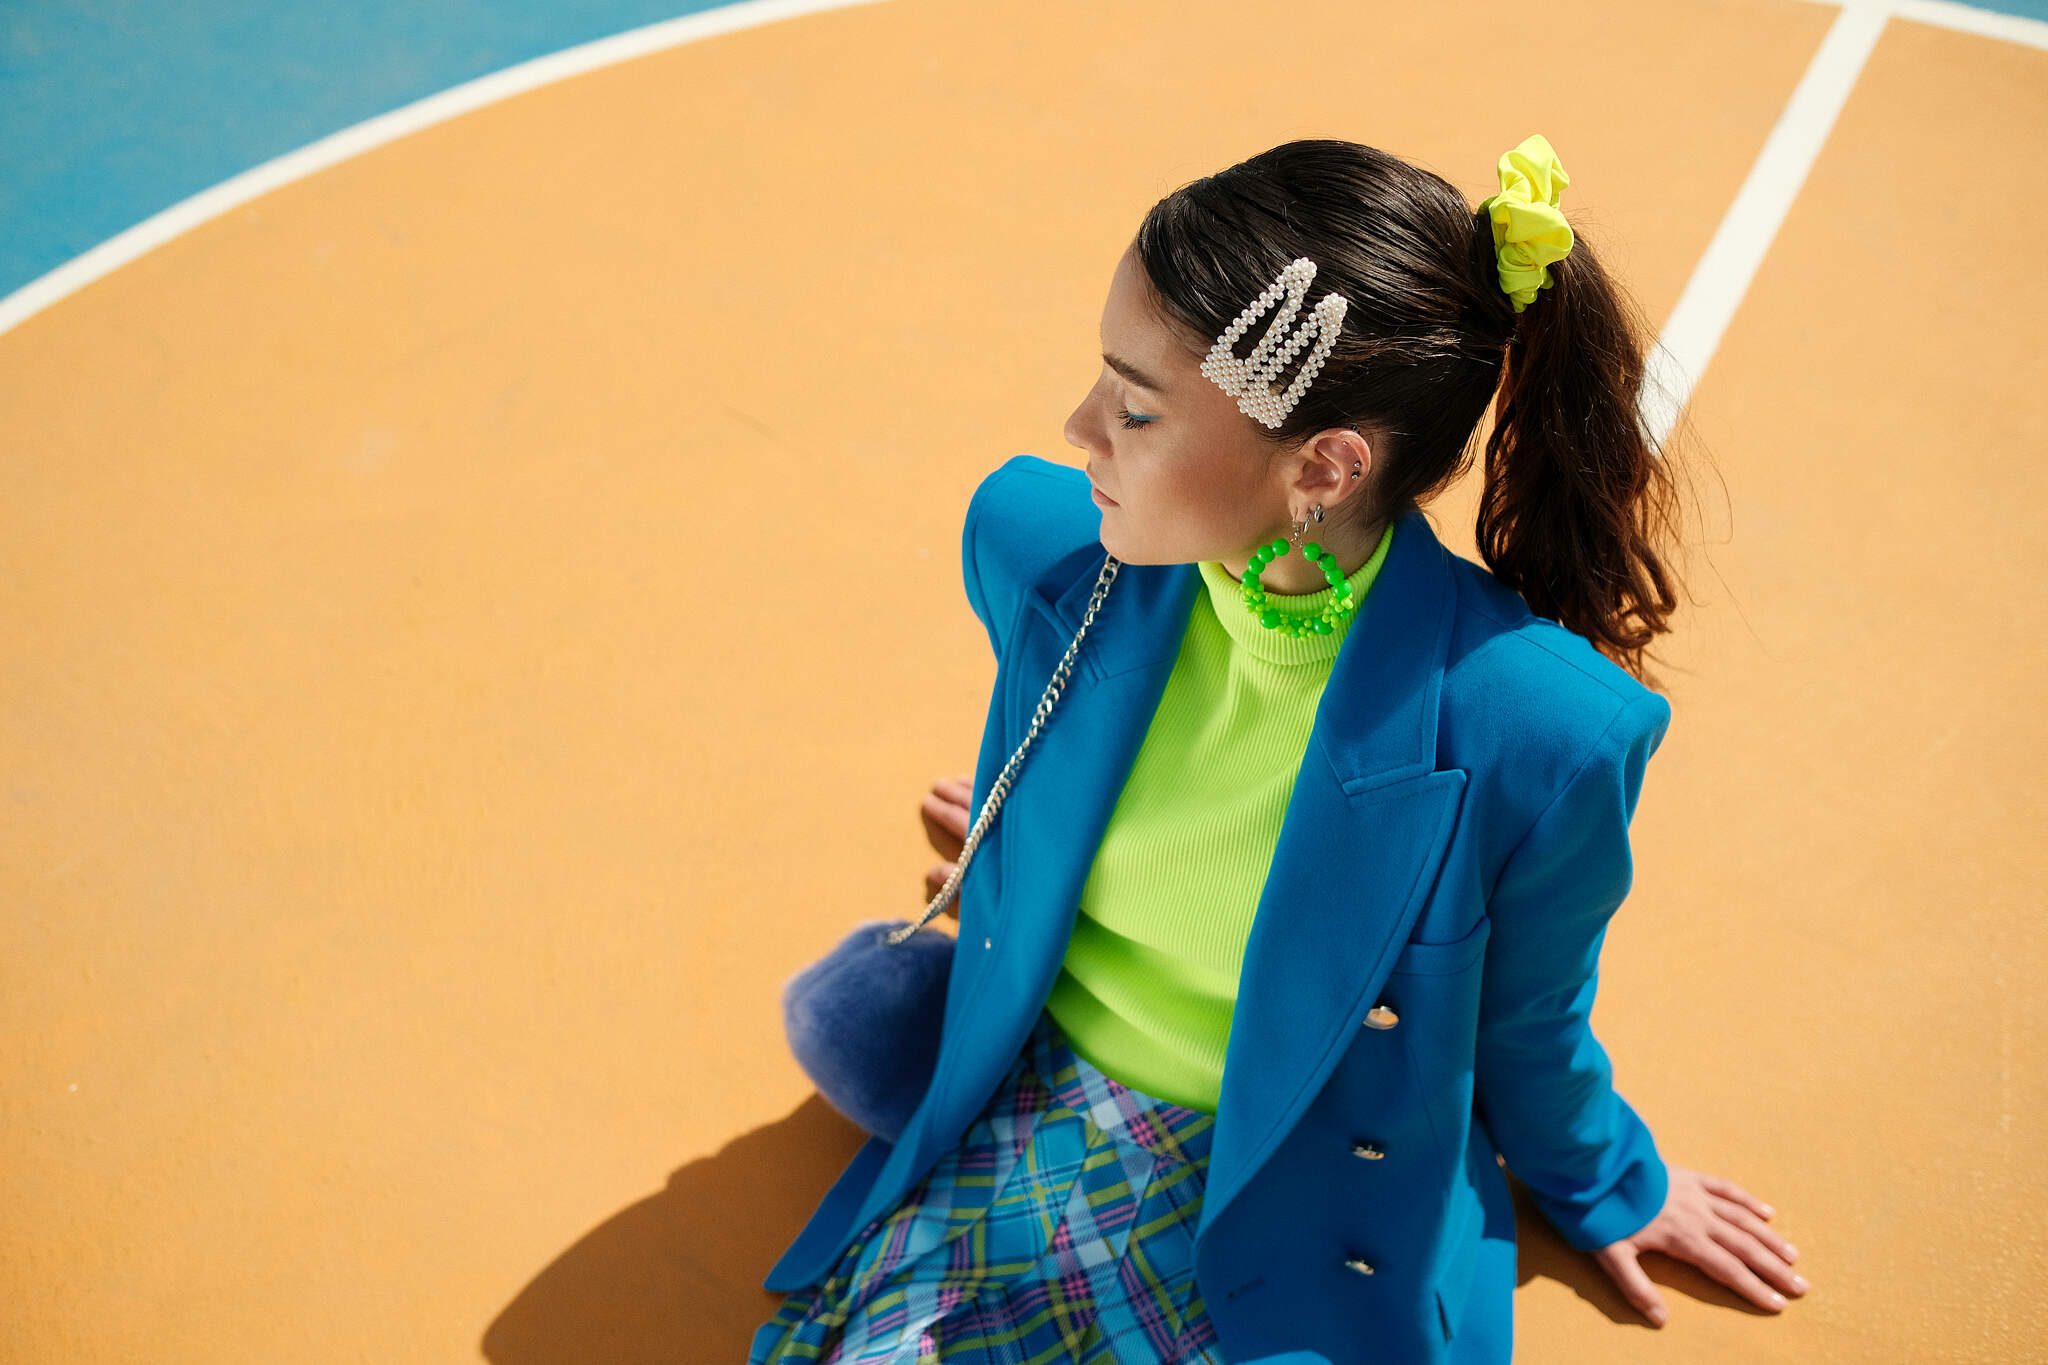 Portrait Fashion Photography Colorful Set with Fujifilm Camera in Italy by Alessandro Michelazzi